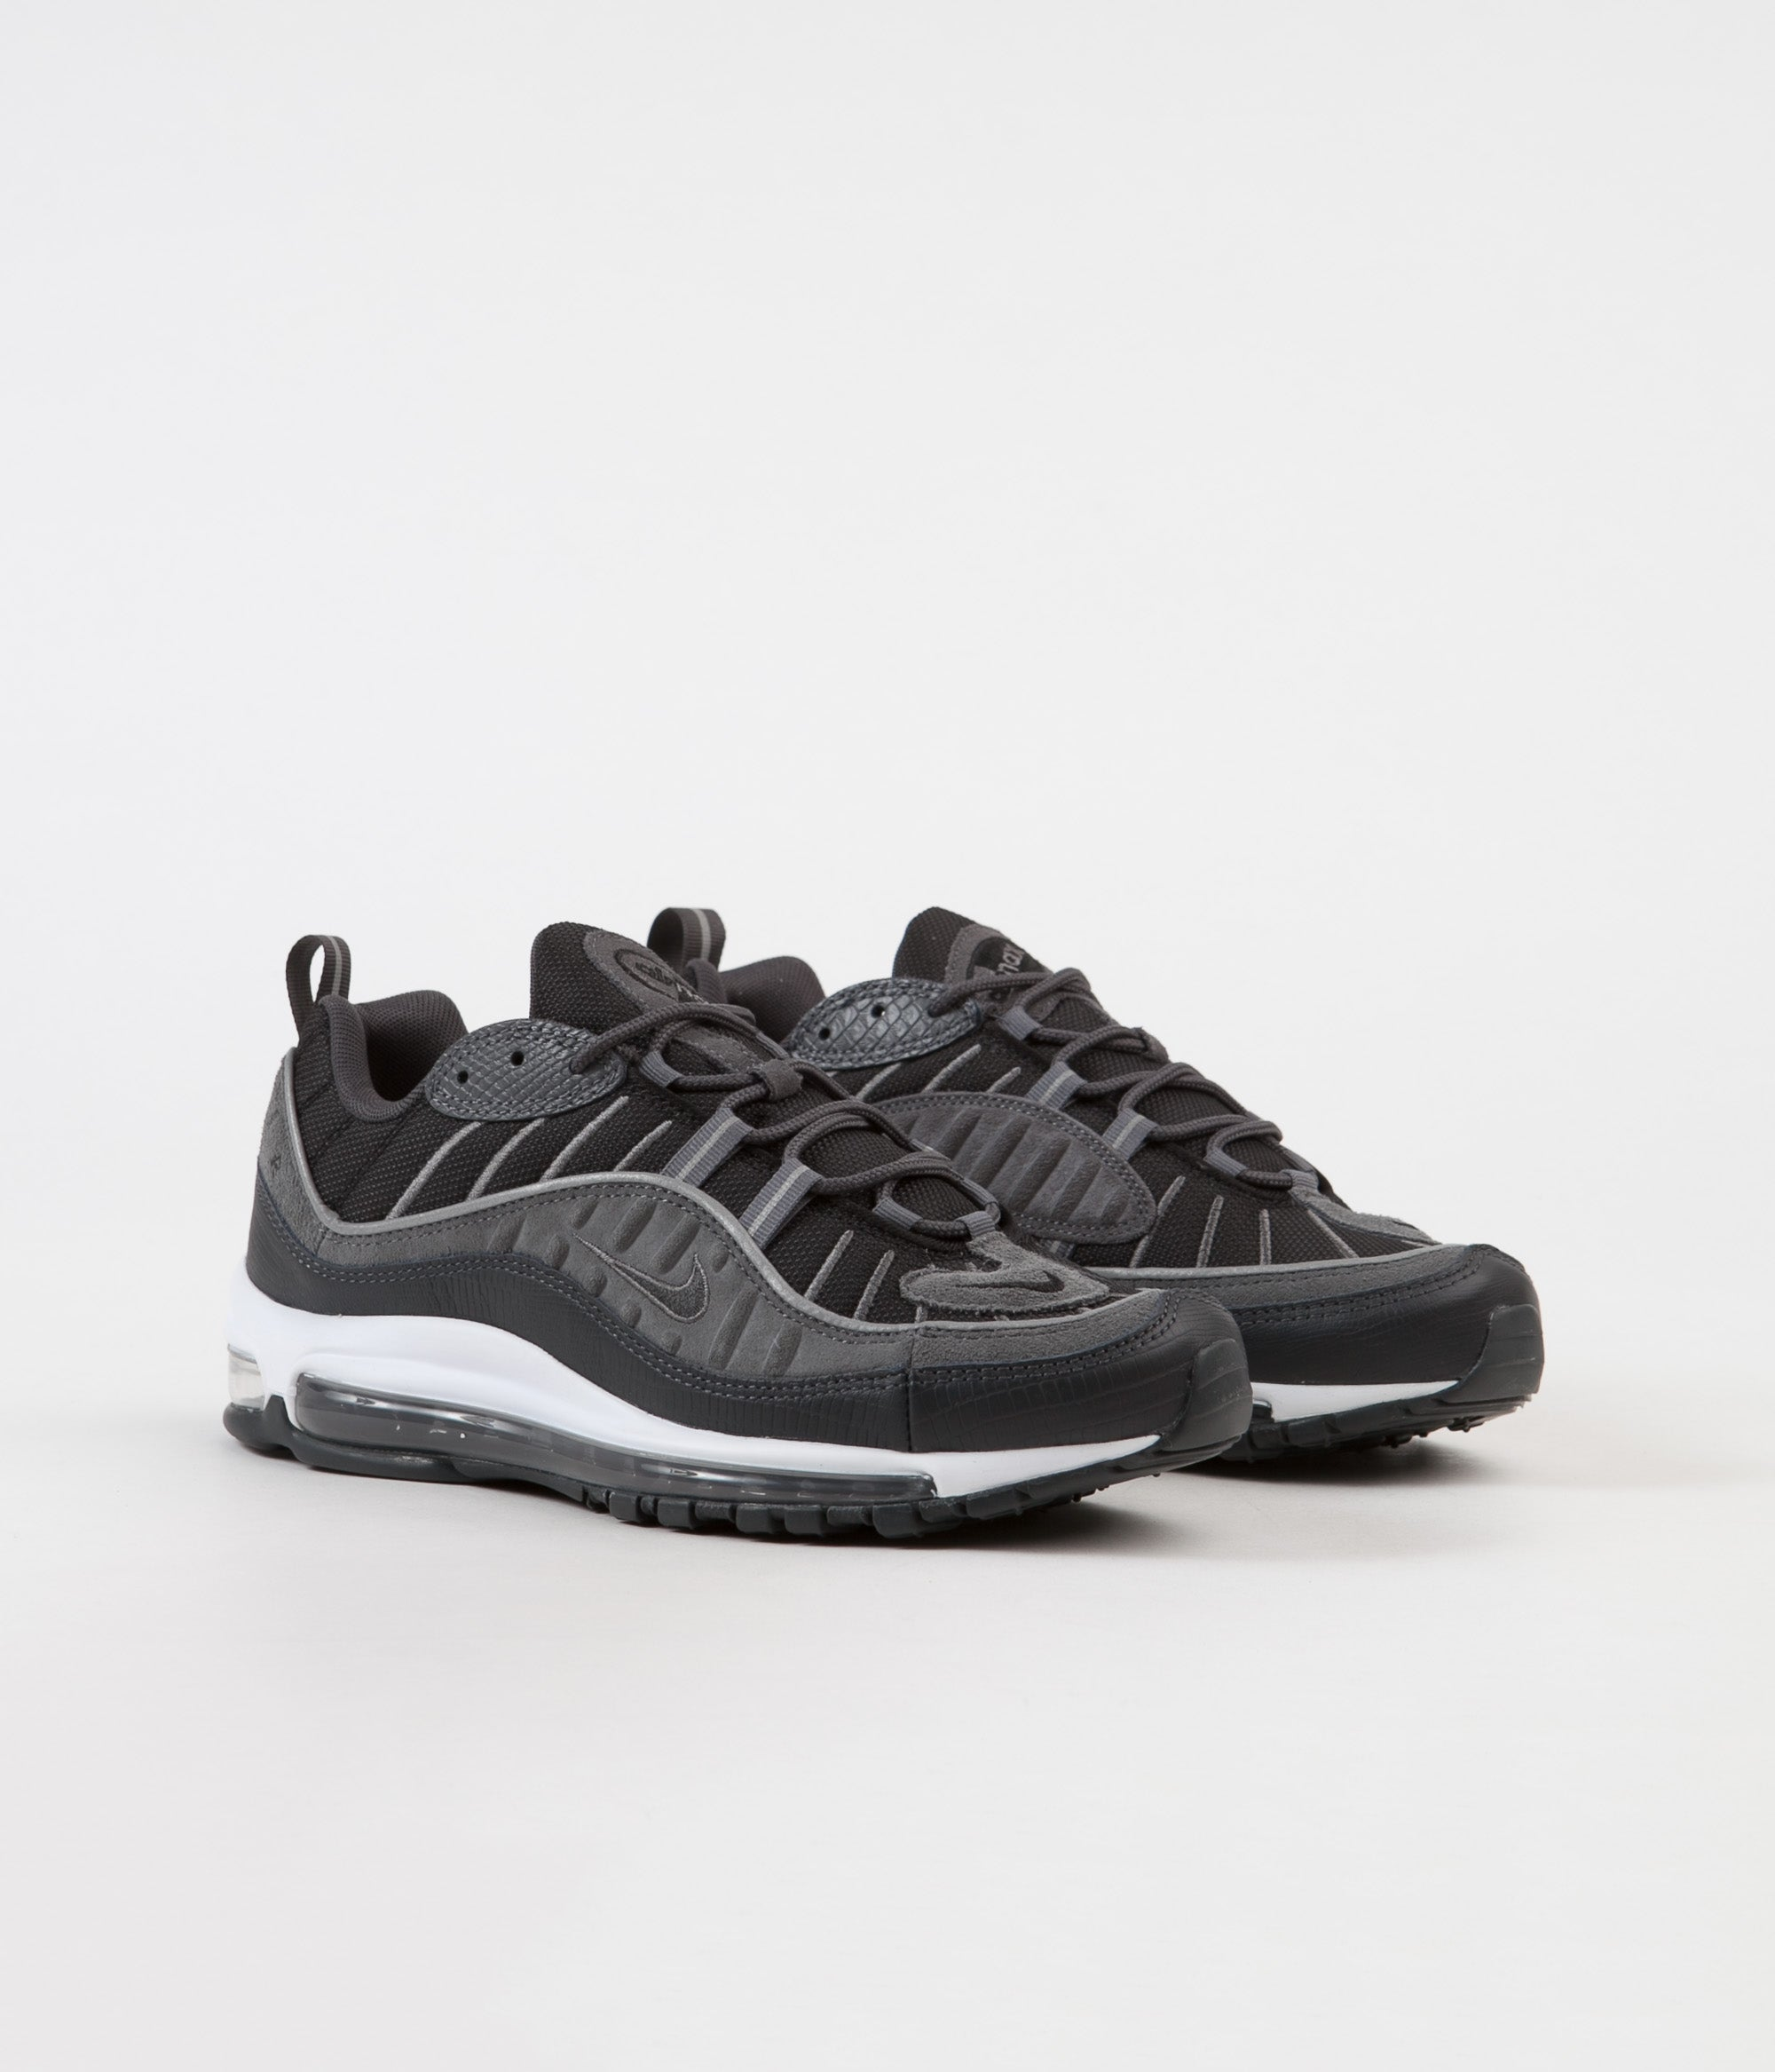 timeless design b10f0 2ca05 ... Nike Air Max 98 SE Shoes - Black  Anthracite - Dark Grey - White ...